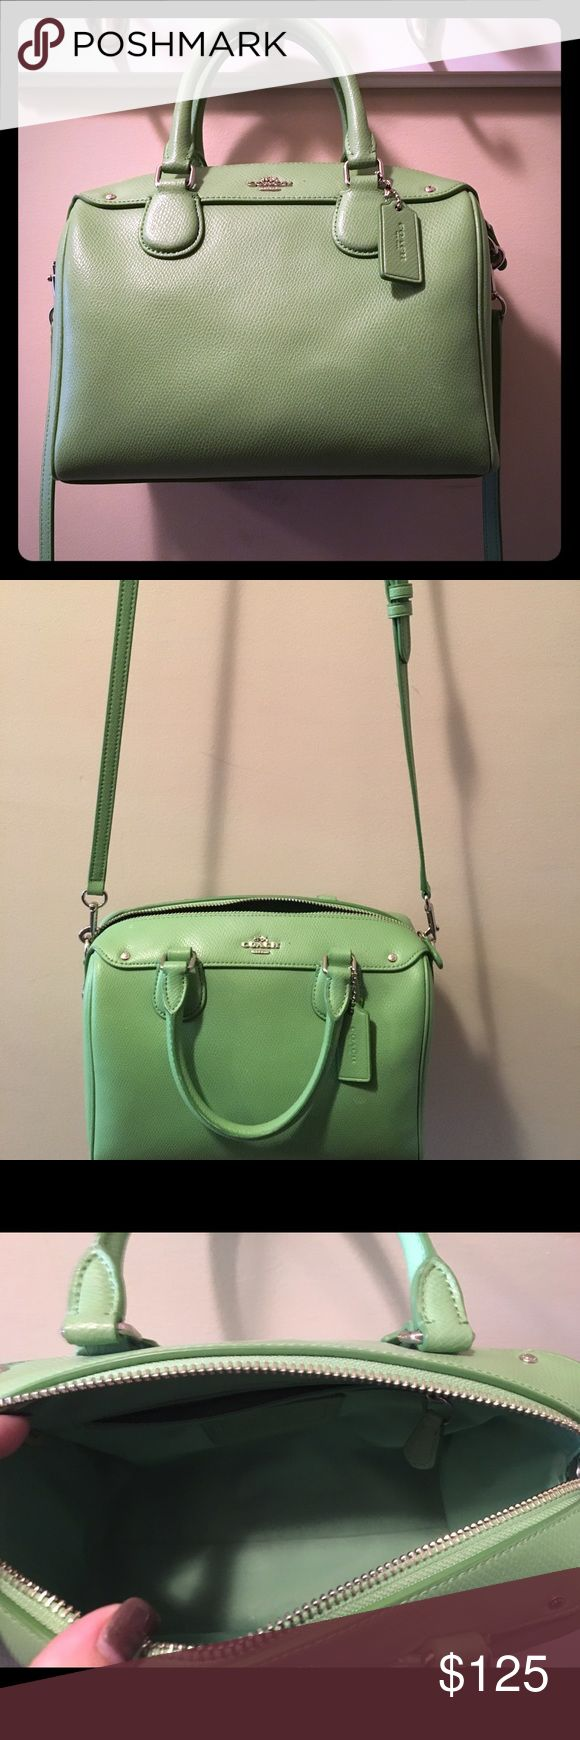 "Coach handbag like new. Authentic Coach handbag in green color named ""pistachio"". Excellent condition. Only used a few times but lots of compliments. Just downsizing my collection. Coach Bags Crossbody Bags"